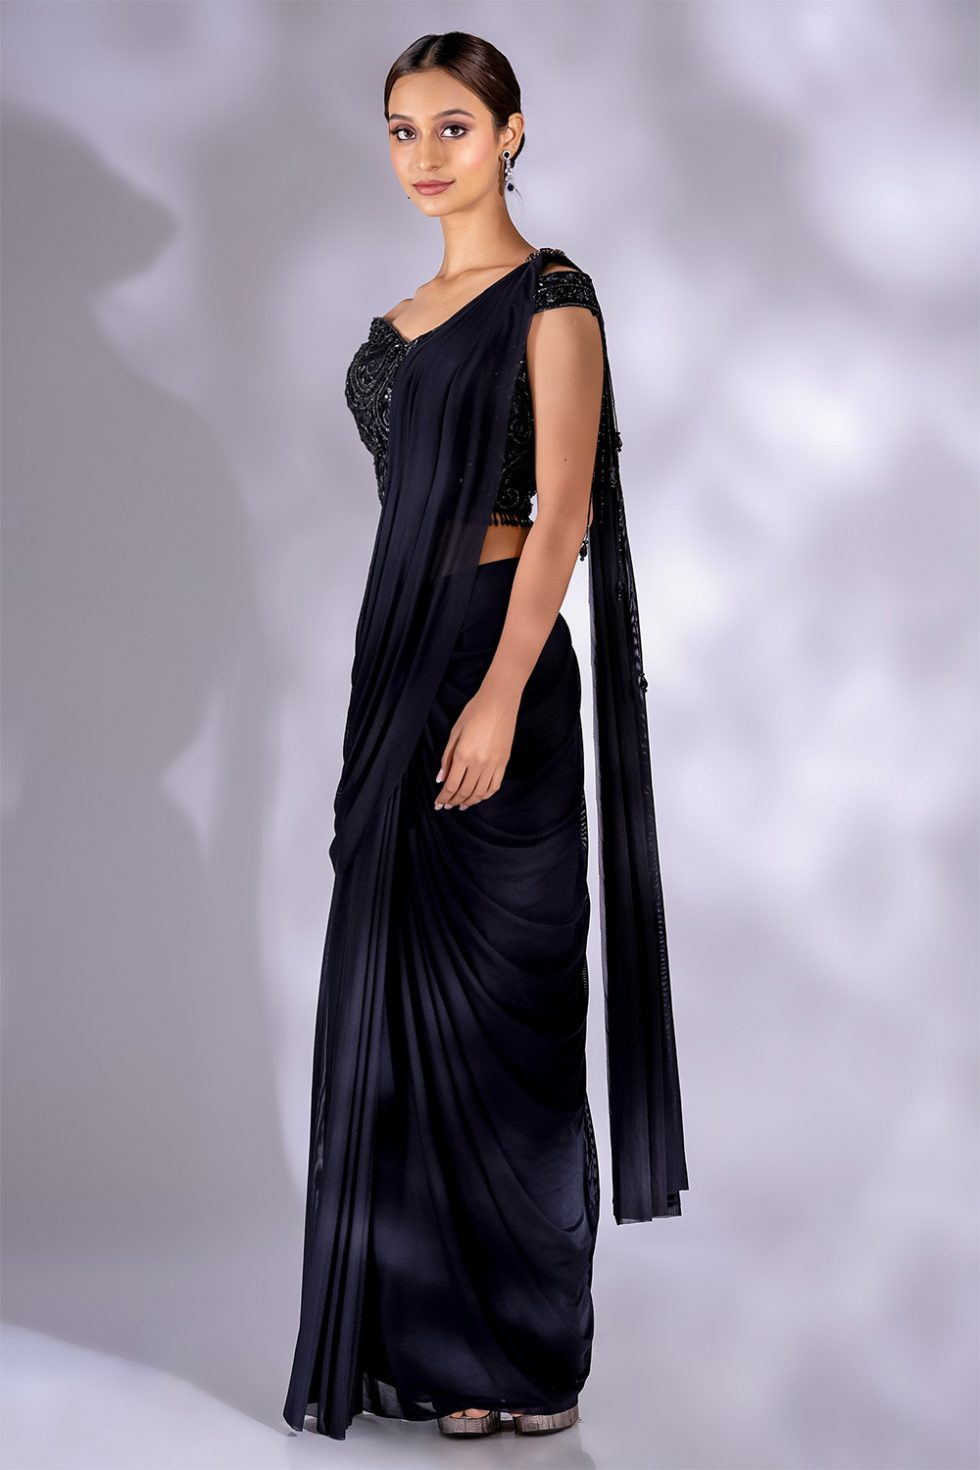 Charcoal black pre stitched draped saree and matching hand embroidered off the shoulder blouse with a jewelled broach and tassels.